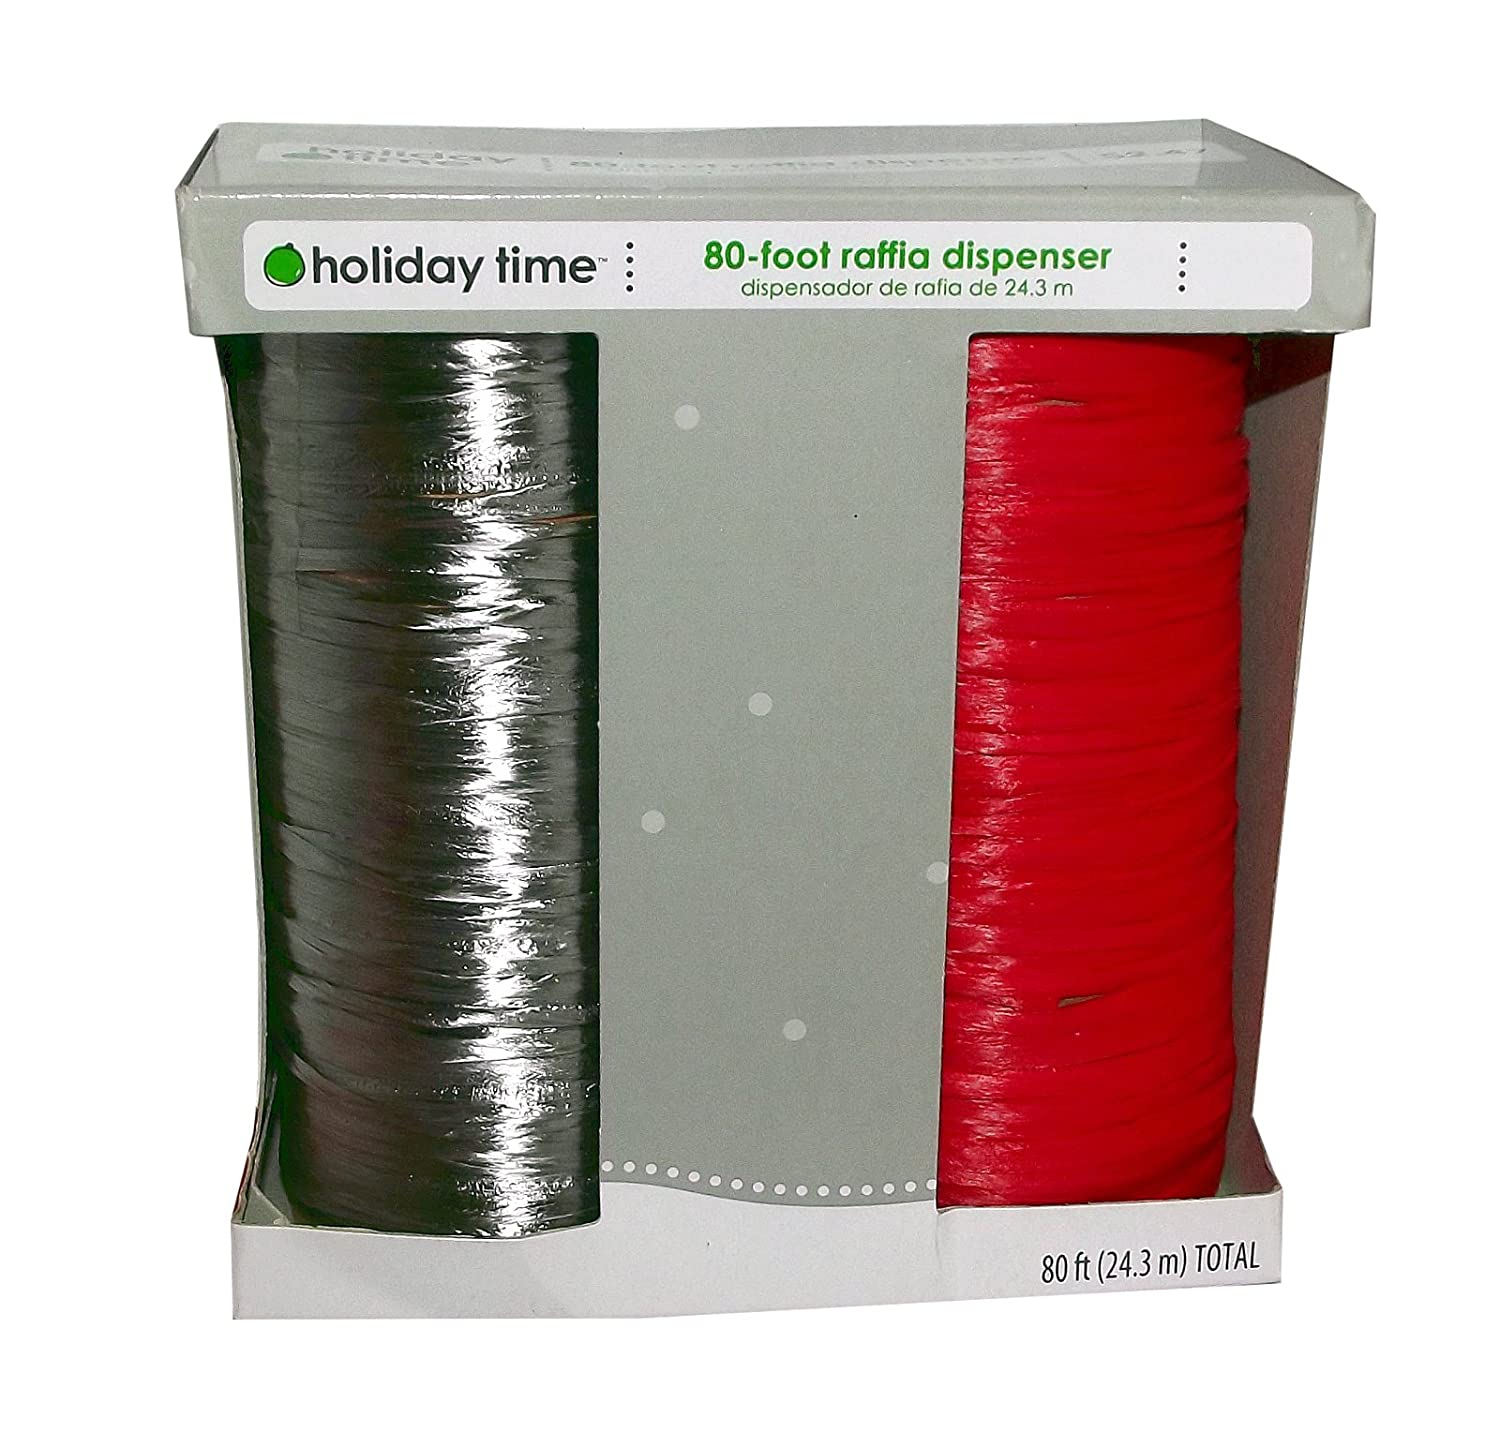 Amazon.com: 80-Ft. Raffia Dispenser Ribbon (Red/Silver): Health & Personal Care